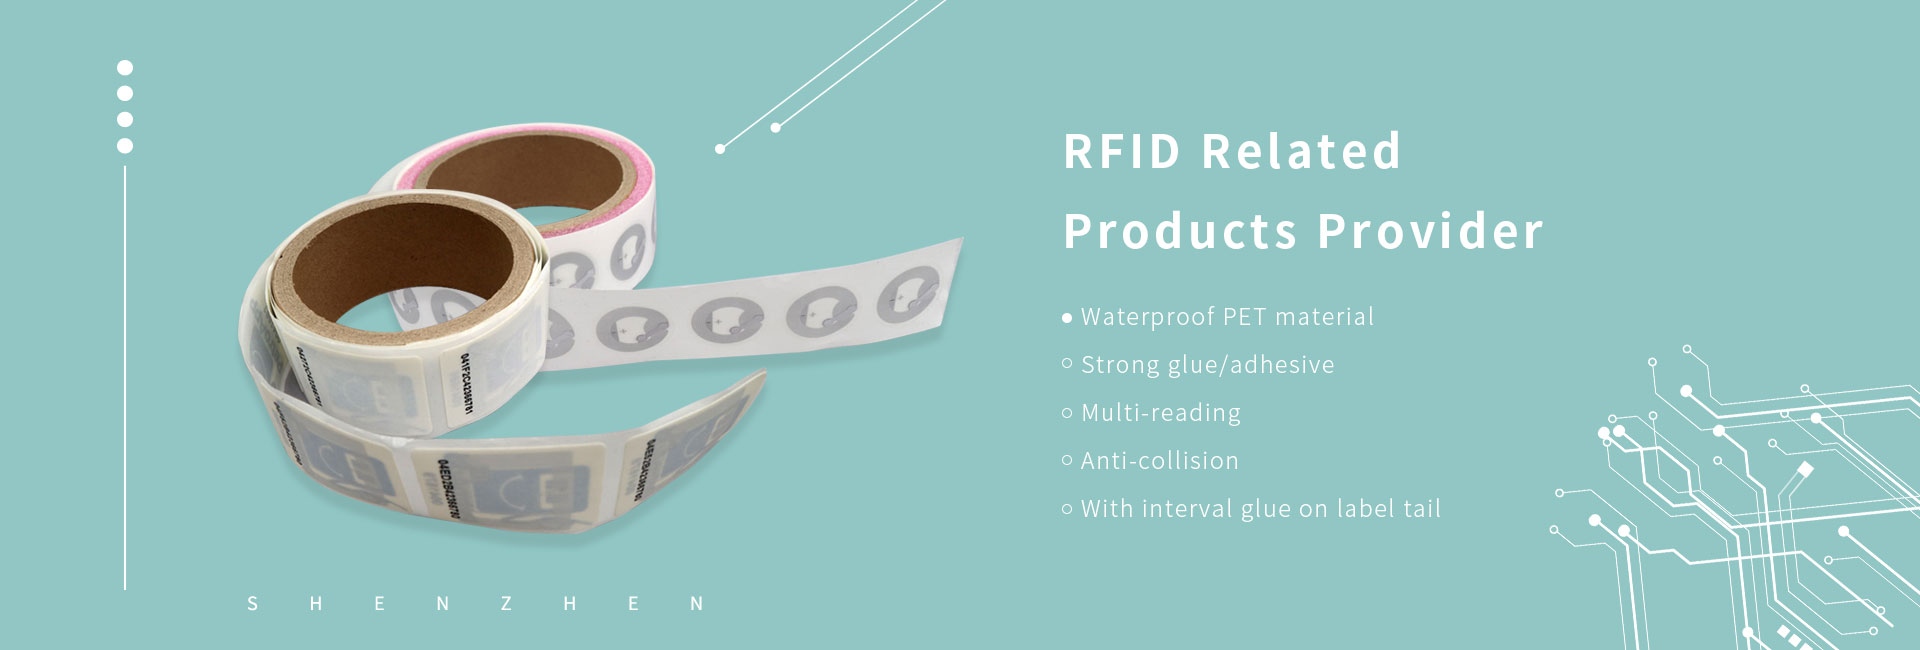 RFID Related